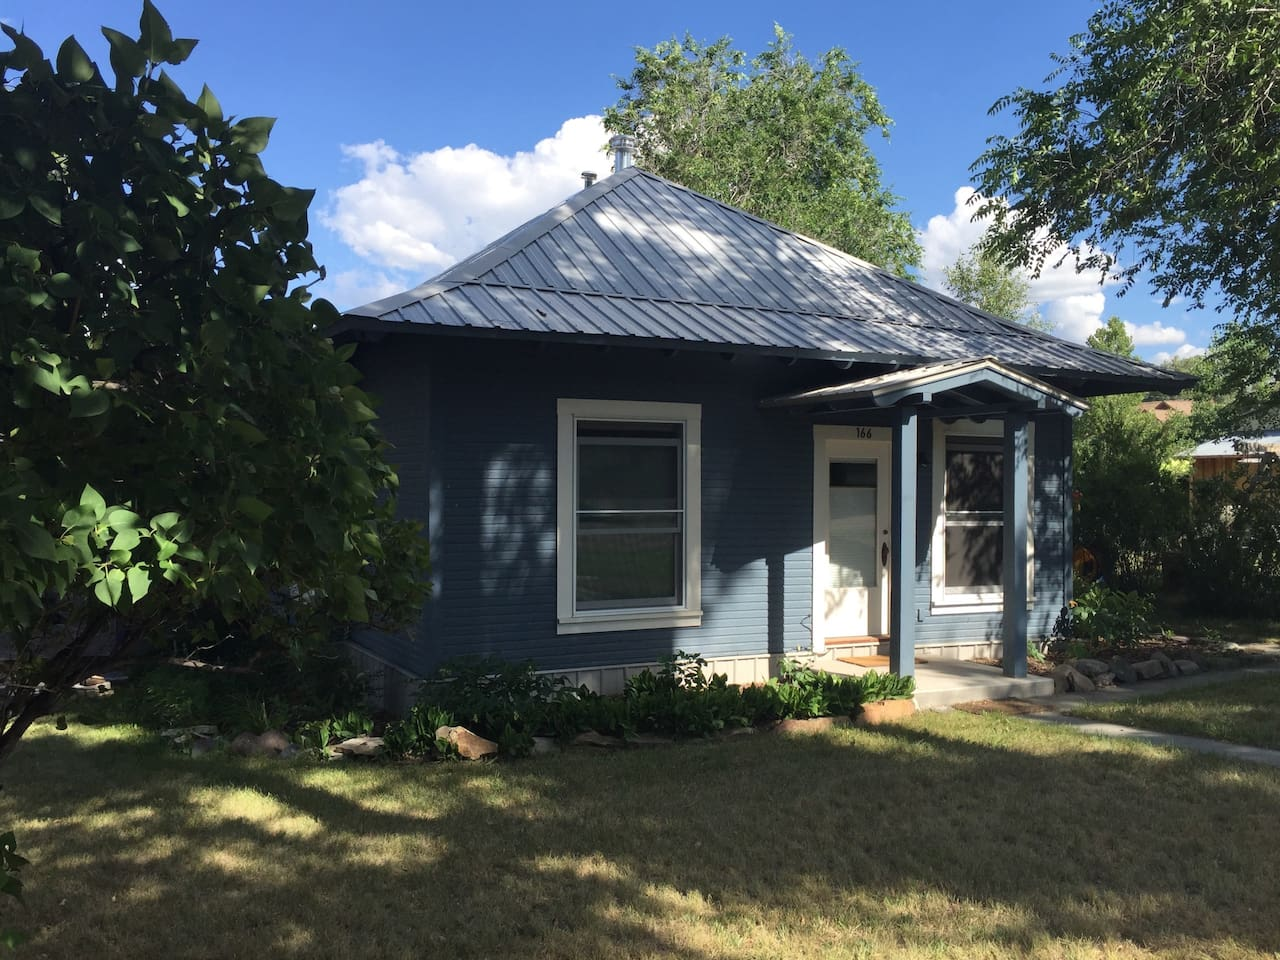 Early 20th century bungalow, historic and completely refurbished. Super tight, large, double-hung windows with accordion shades (up or down), zoned heating, tons of sun but nice shade, too, from giant mature cottonwoods out front. Many old lilacs, all located right in town: 10 min walk to brew pub, grocery, antiques, town park, ice cream, coffee shops, breakfast joints, public library, river trail.